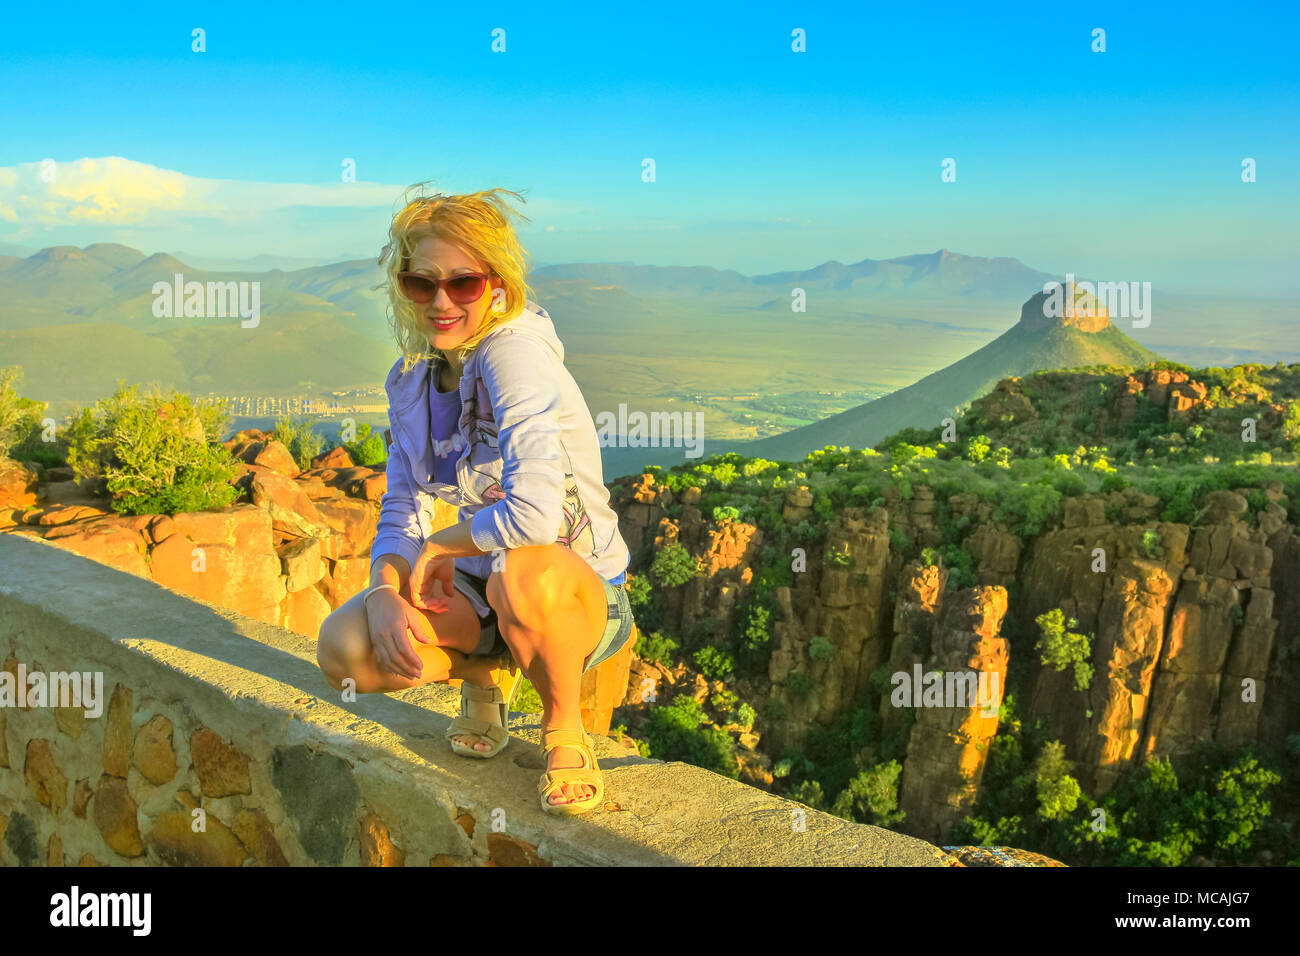 Happy tourist sitting on the rocks after hiking at Valley of Desolation near Graaff-Reinet, South Africa.Sunset light. Blonde woman enjoying aerial views of Camdeboo National Park, Karoo, Eastern Cape - Stock Image